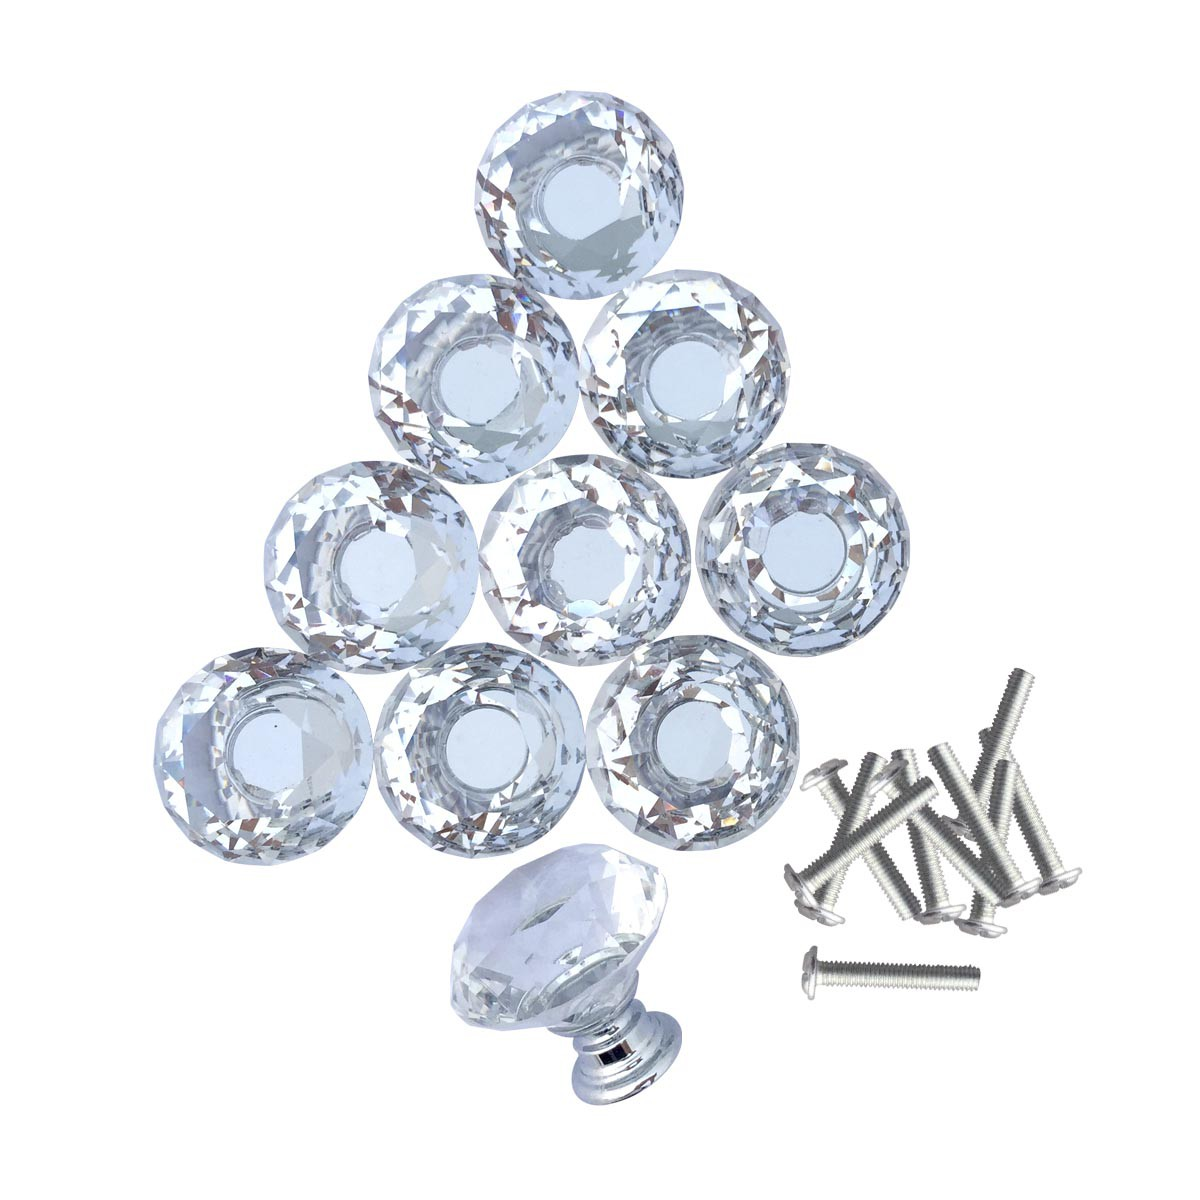 Clear Glass Cabinet Knobs 1.8 Inch Projection Mushroom Pack of 30 pcs Cabinet Hardware Cabinet Knobs Cabinet Knob